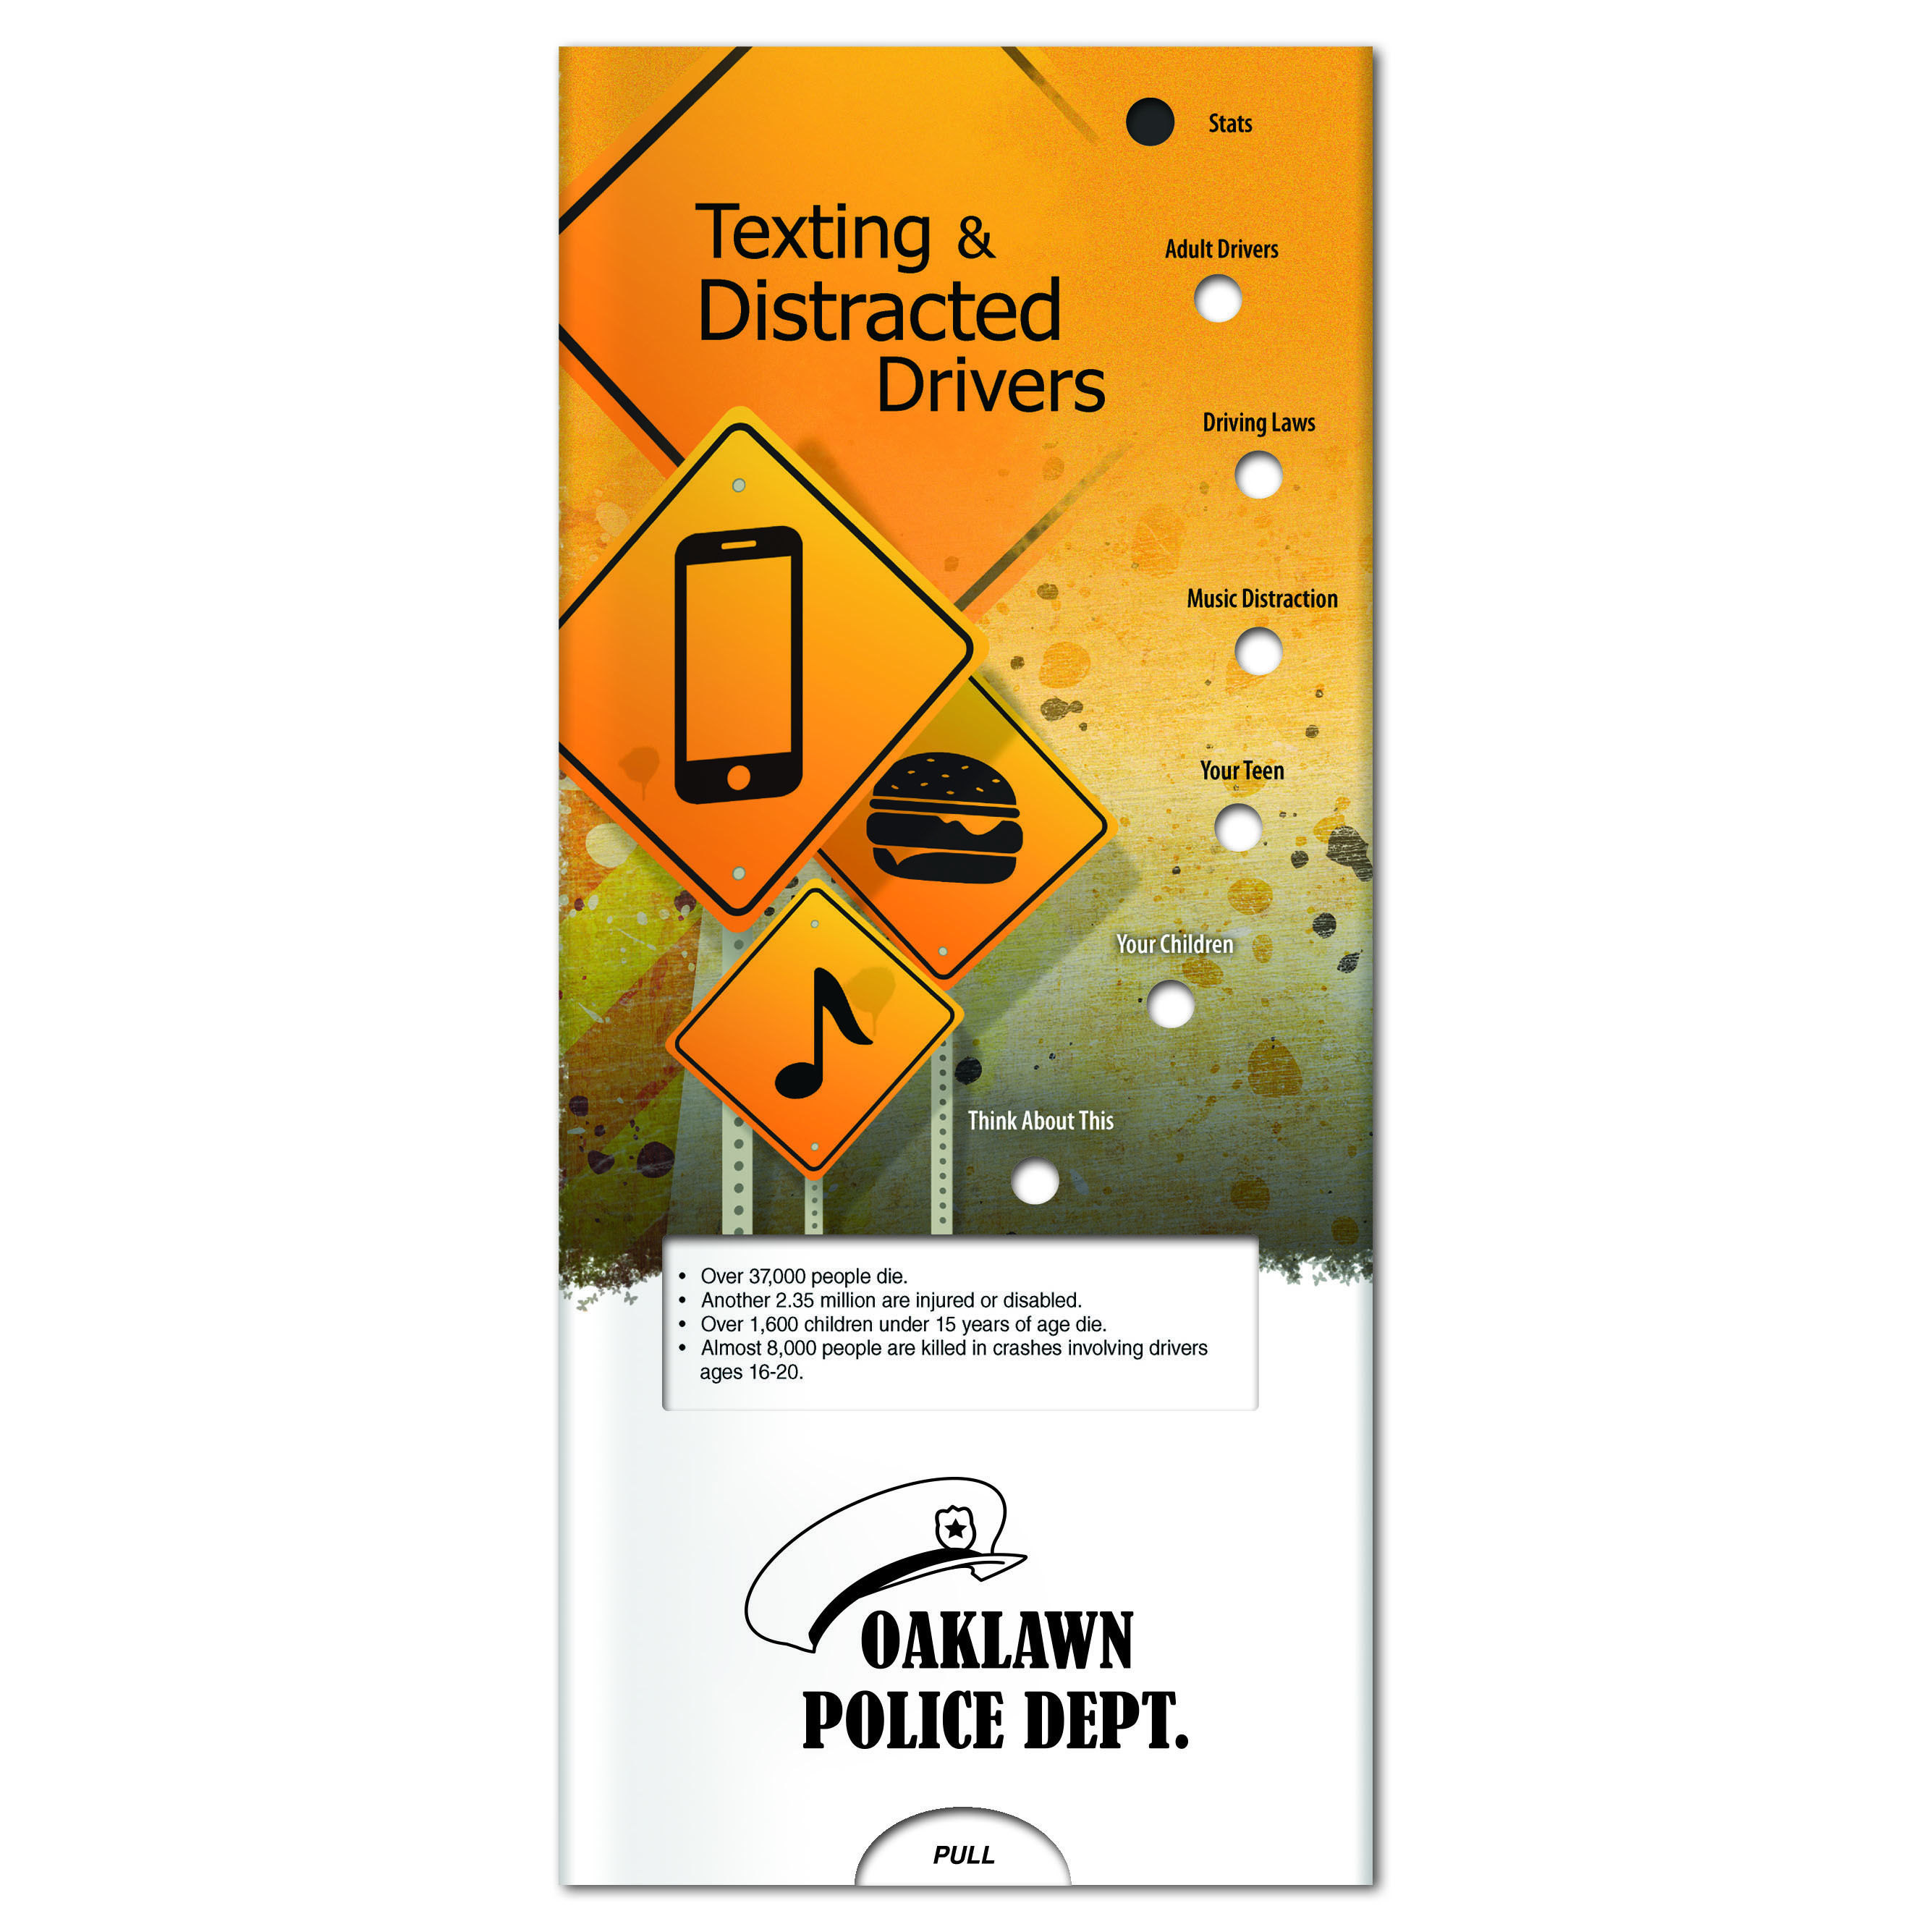 Texting & Distracted Drivers Pocket Slider™